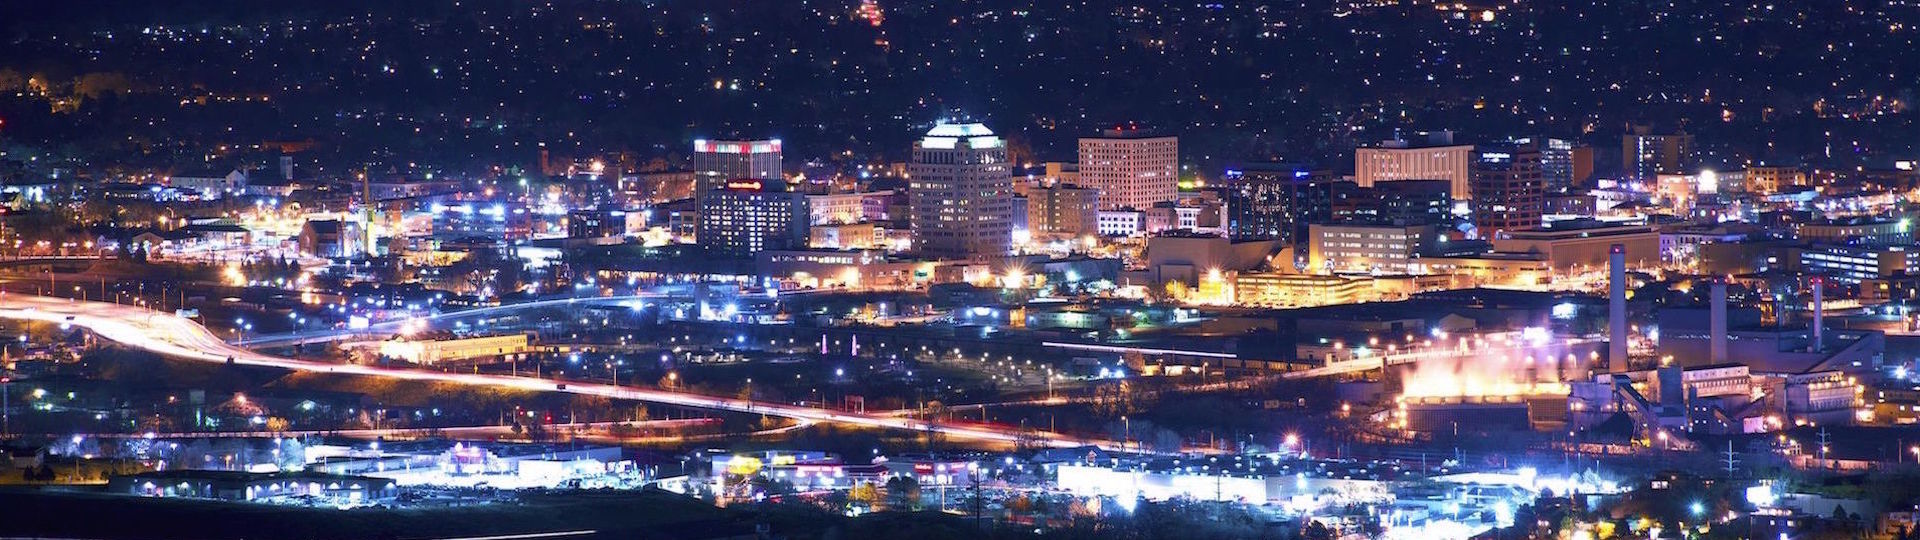 Downtown Colorado Springs at Night